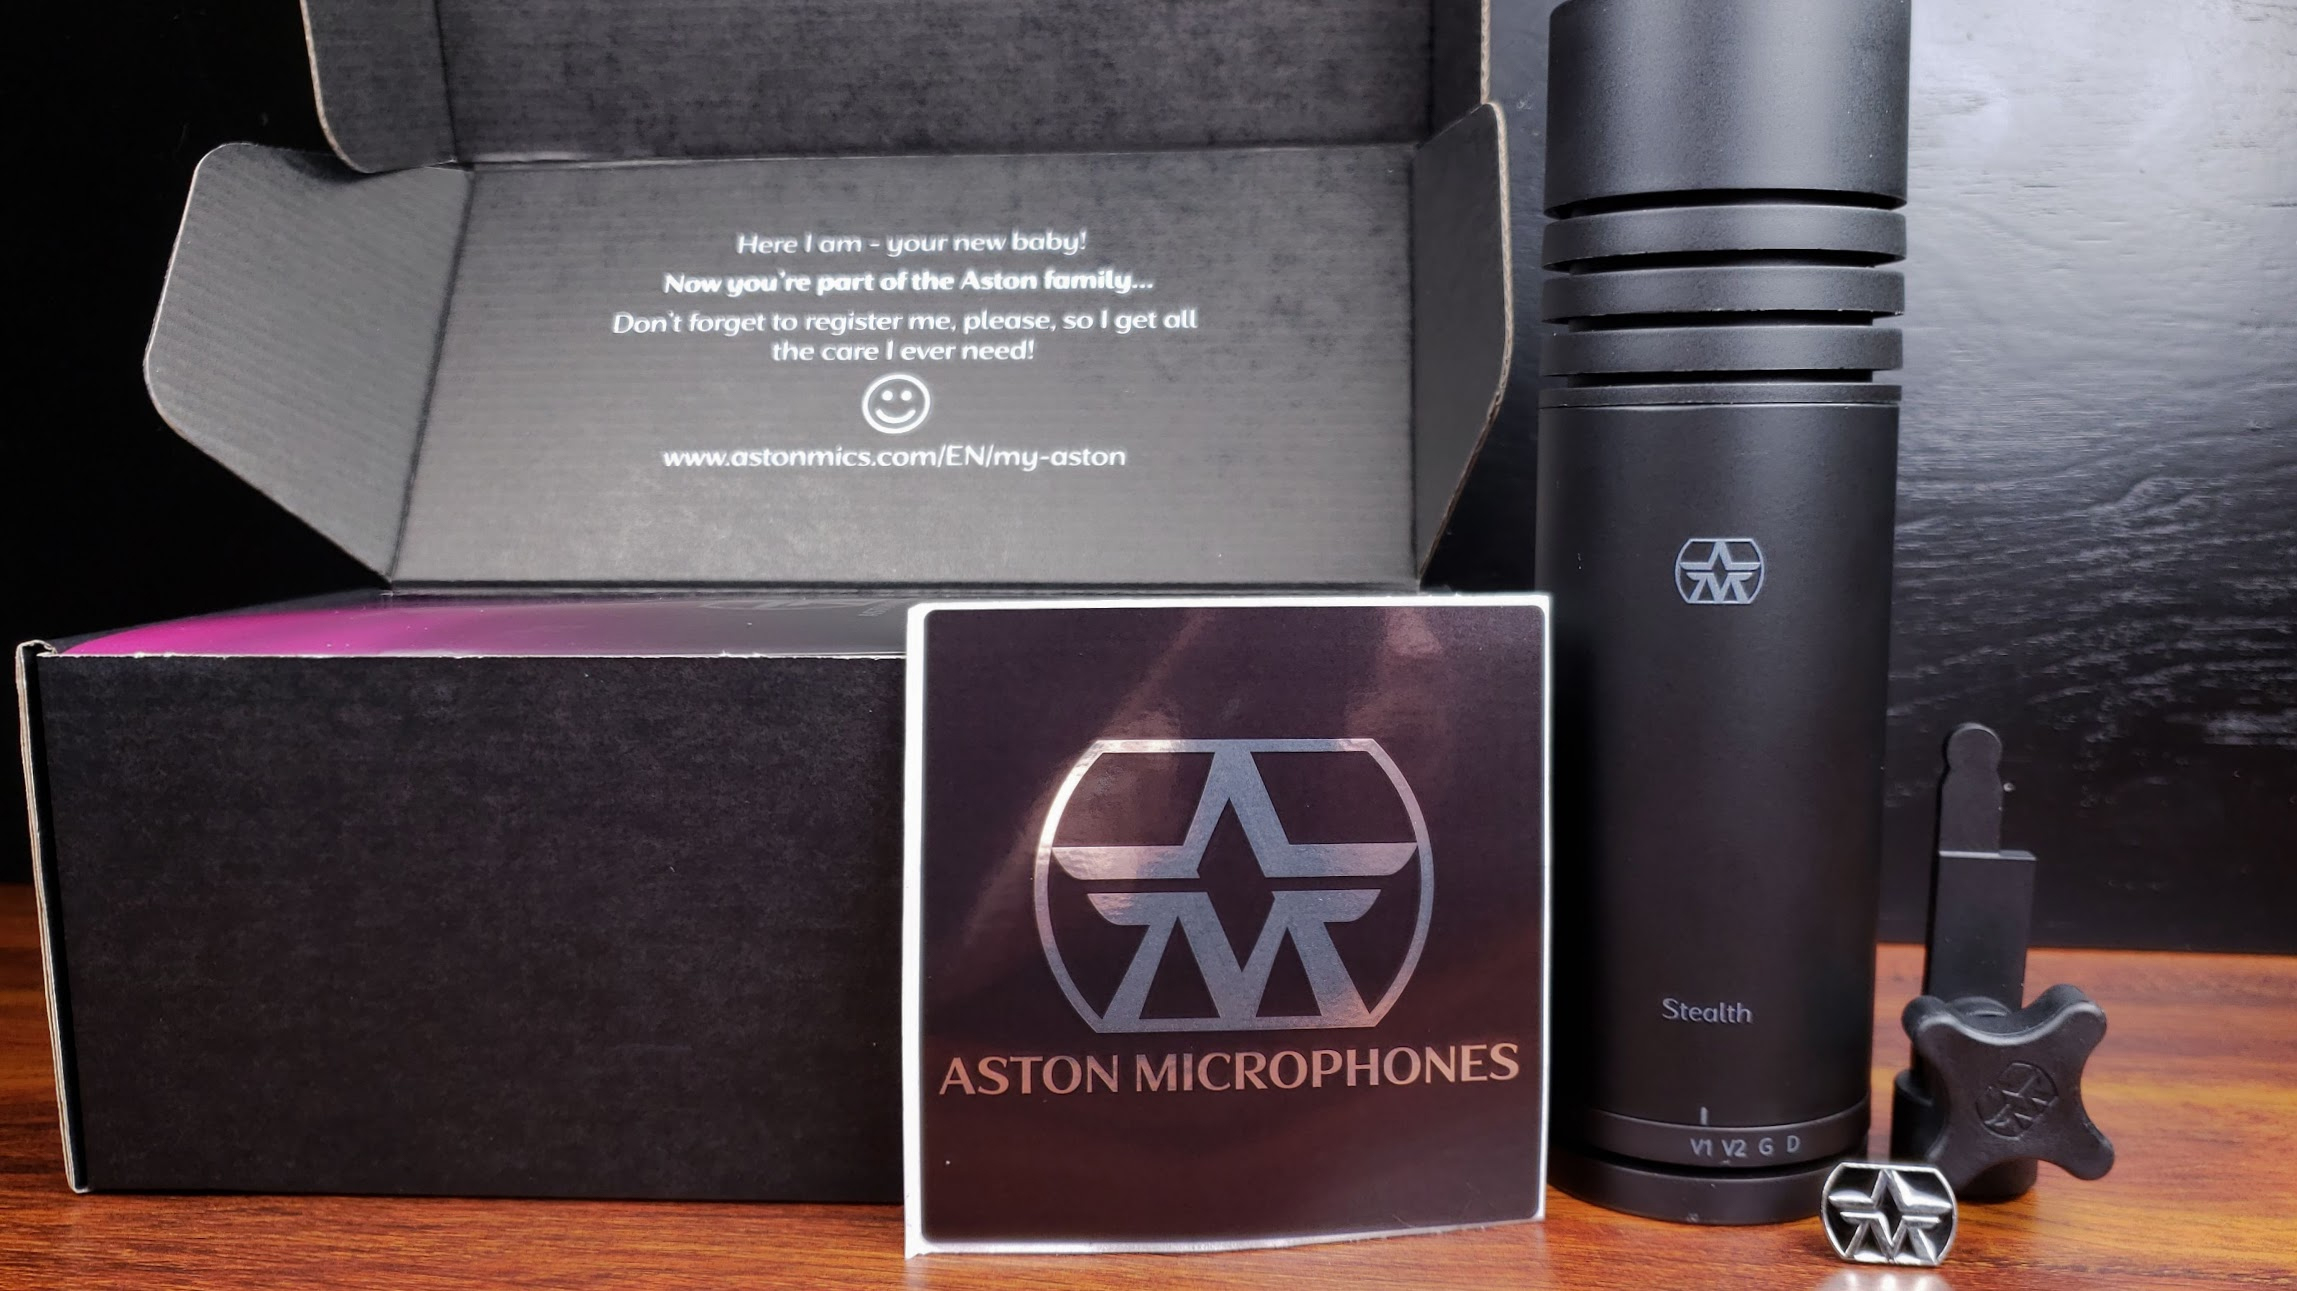 Aston Microphones Stealth Review